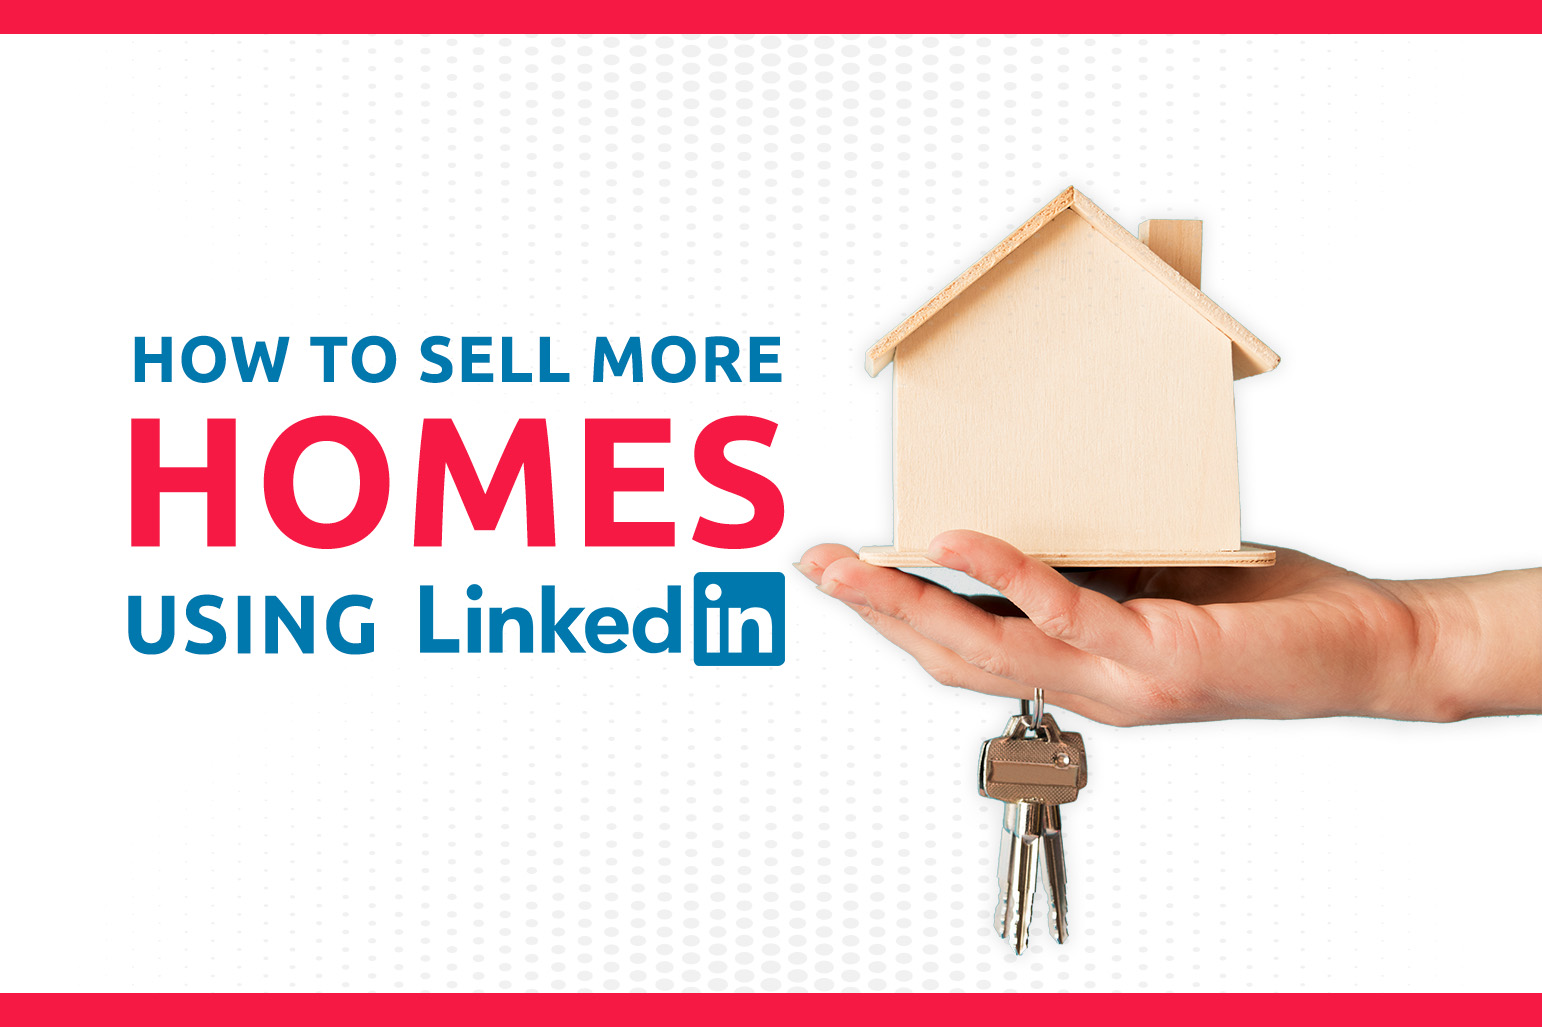 How To Sell More Homes Using LinkedIn